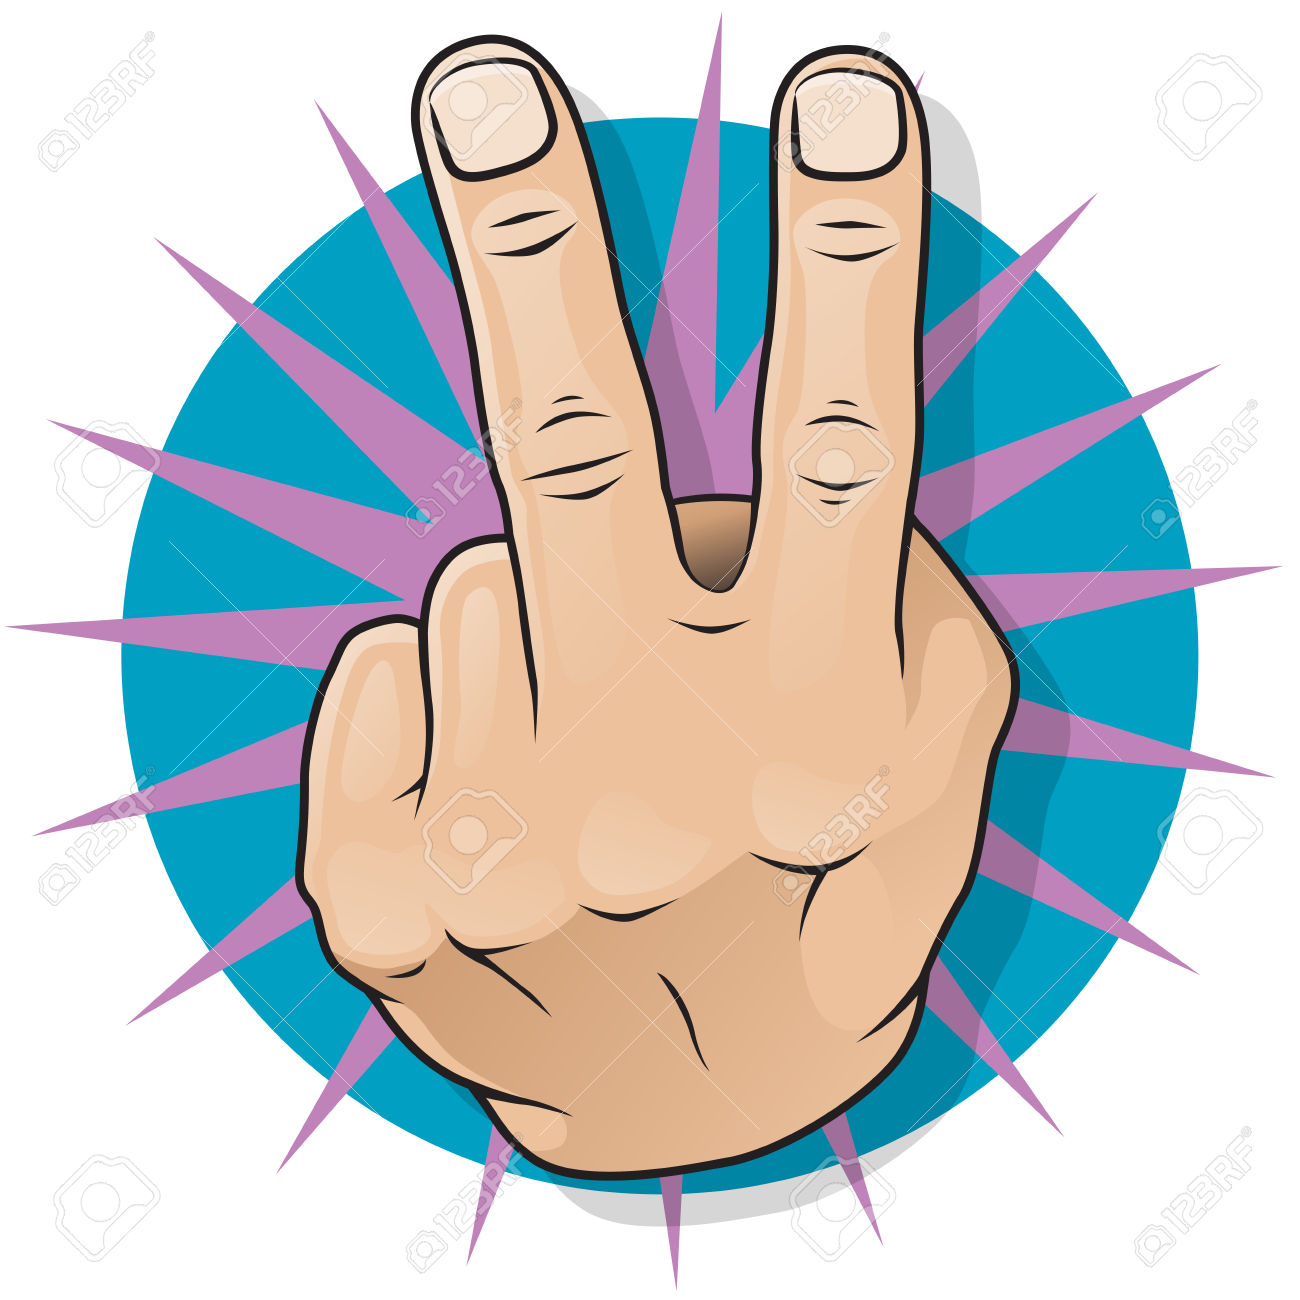 Hand Gesture clipart professional communication Two gestures illustration Discussions the